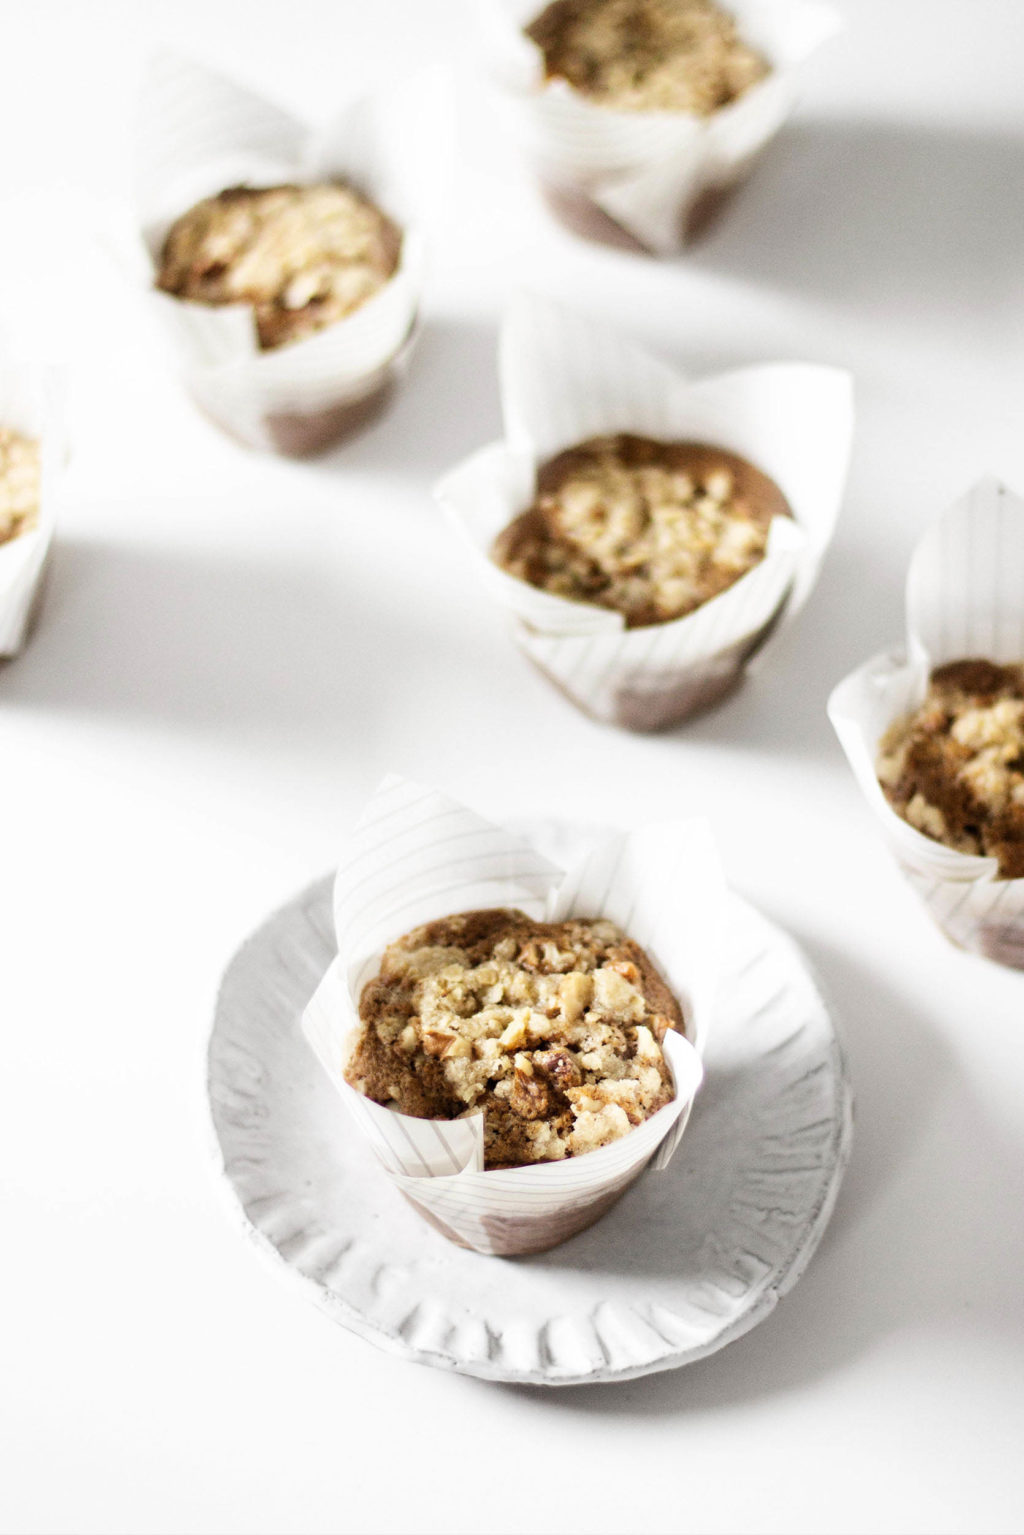 A freshly baked batch of vegan streusel muffins is lined up against a white surface. The muffins are encased in white, paper liners.